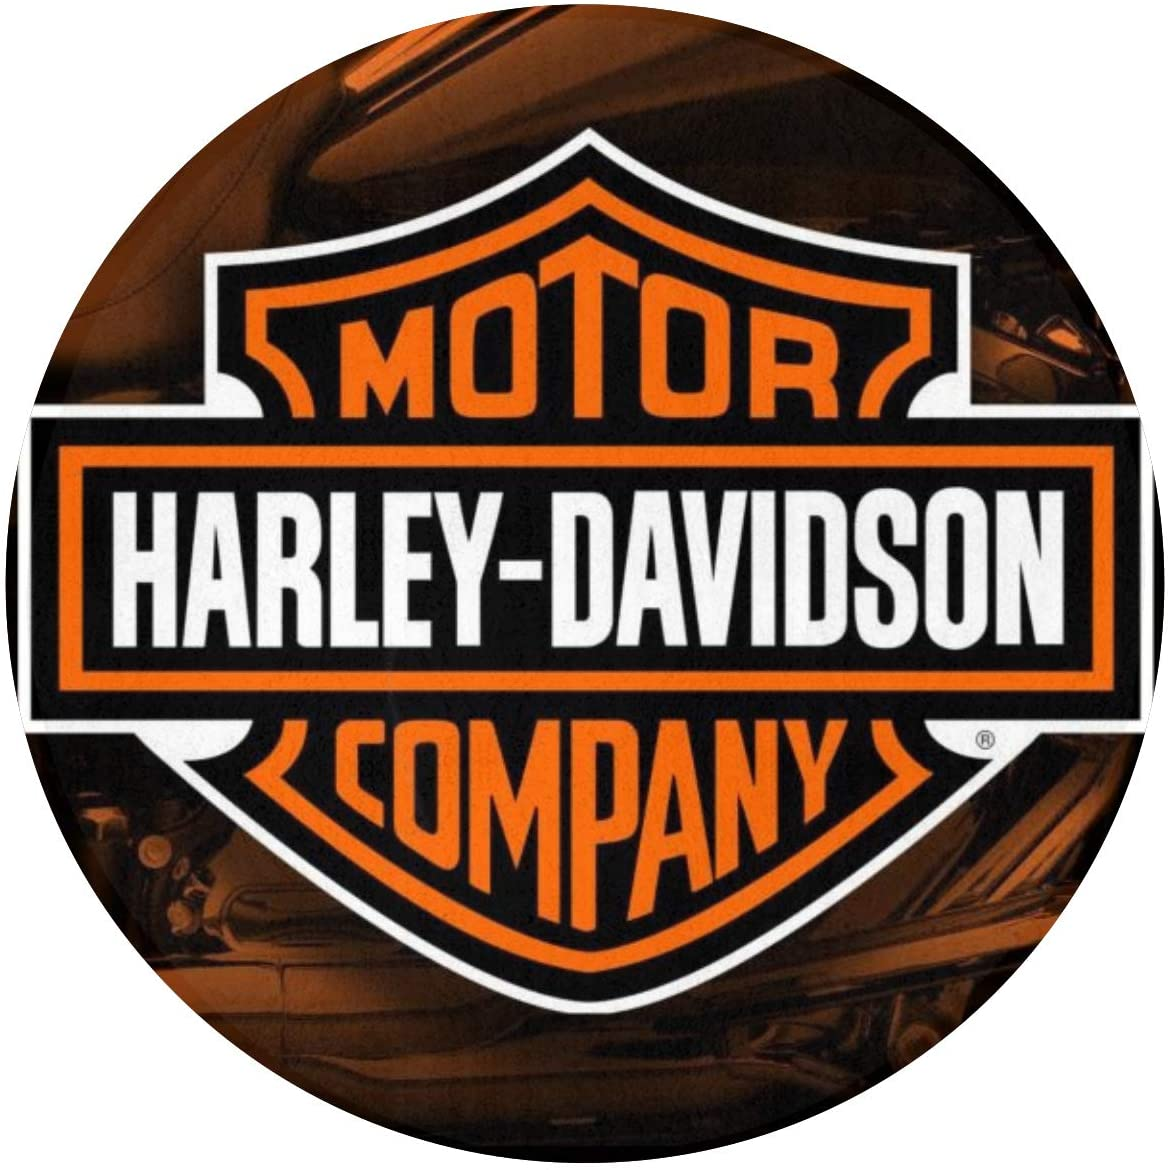 Harley Davidson Logonon-Slip Door Mat. It Can Remove Snow, Mud, Sand, Grass, Leaves And Dust From Shoes And Boots. The Bottom Non-Woven Fabric Is Plastic, Non-Slip, Thick And Durable 23.6 Inches